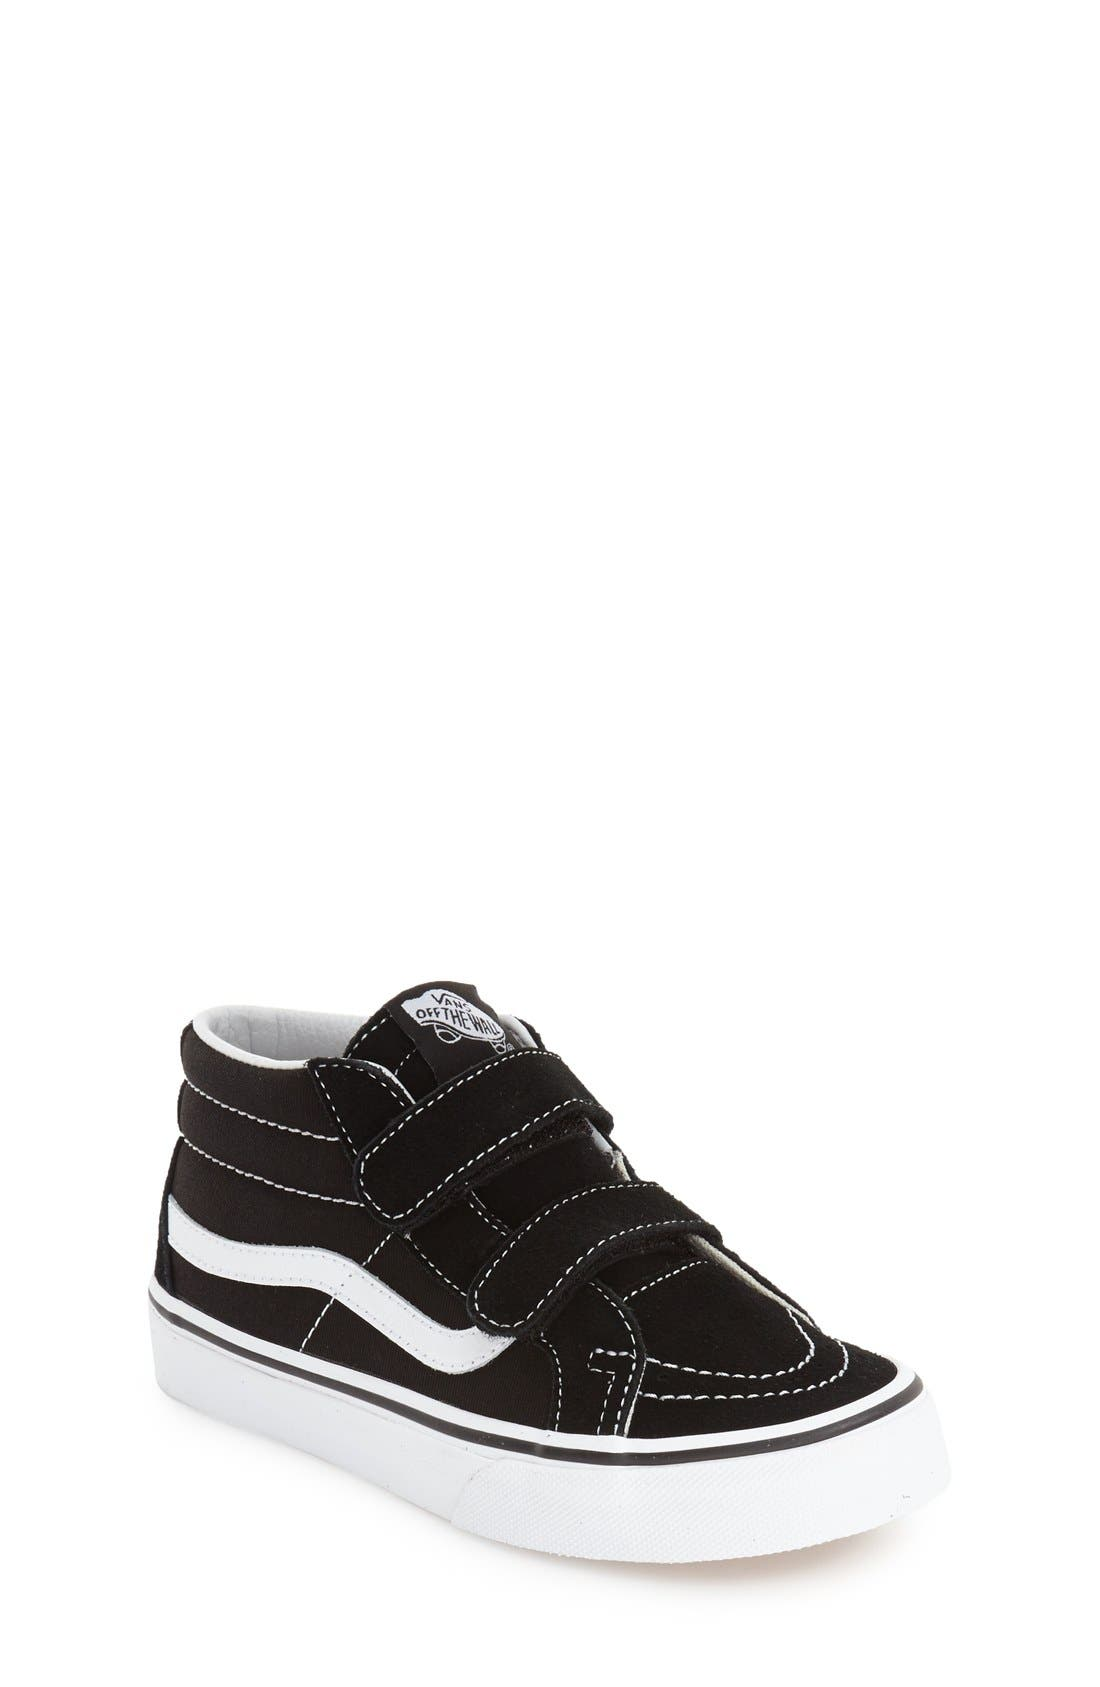 VANS 'Sk8-Hi Reissue V' Sneaker, Main, color, BLACK/ TRUE WHITE